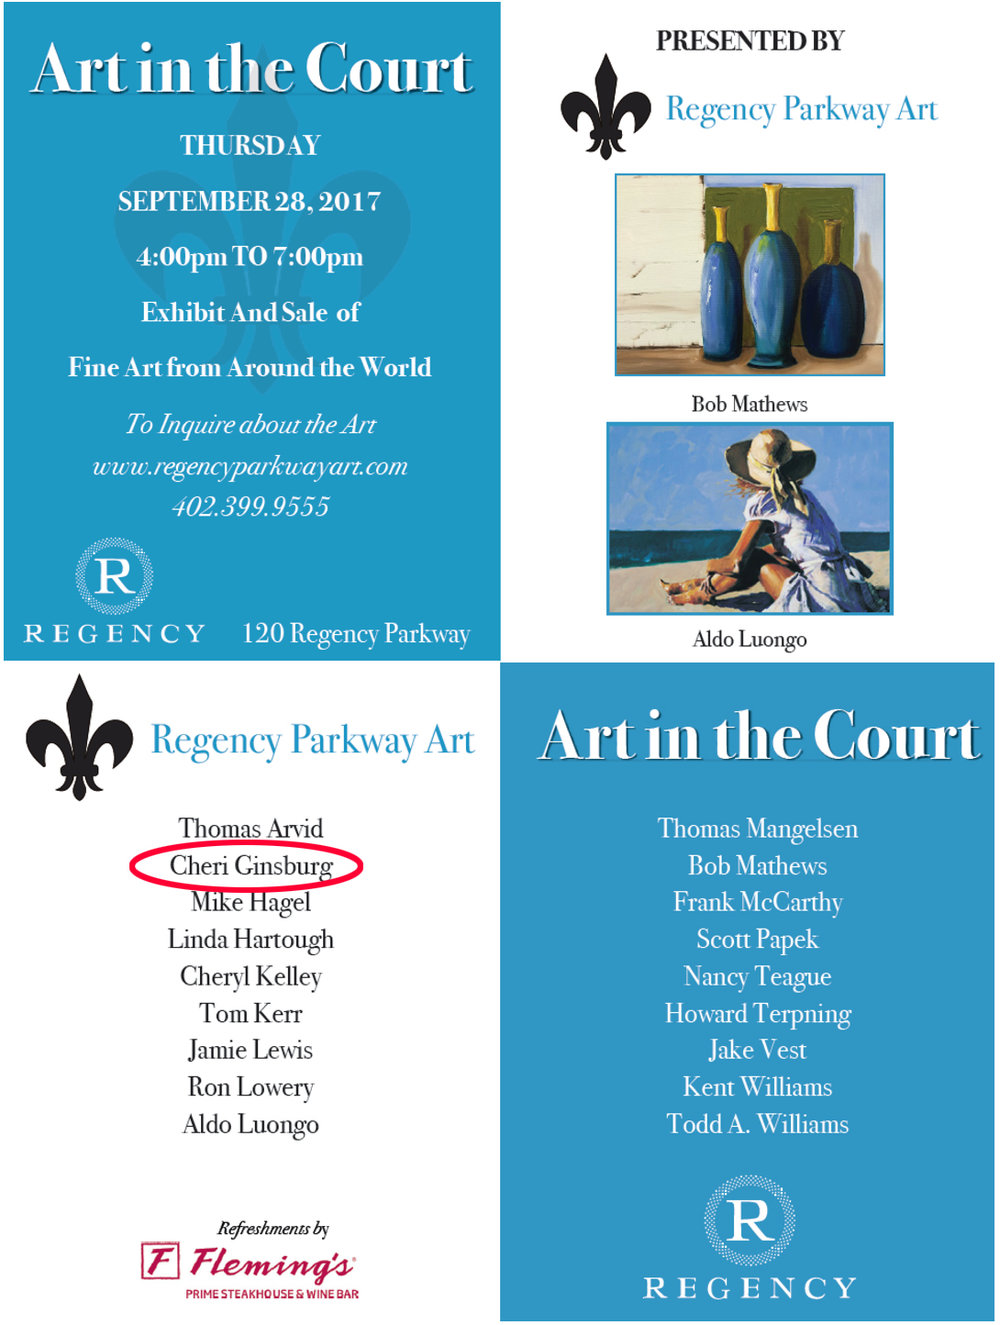 REGENCY PKWY ART EMAIL 9.2017.jpg